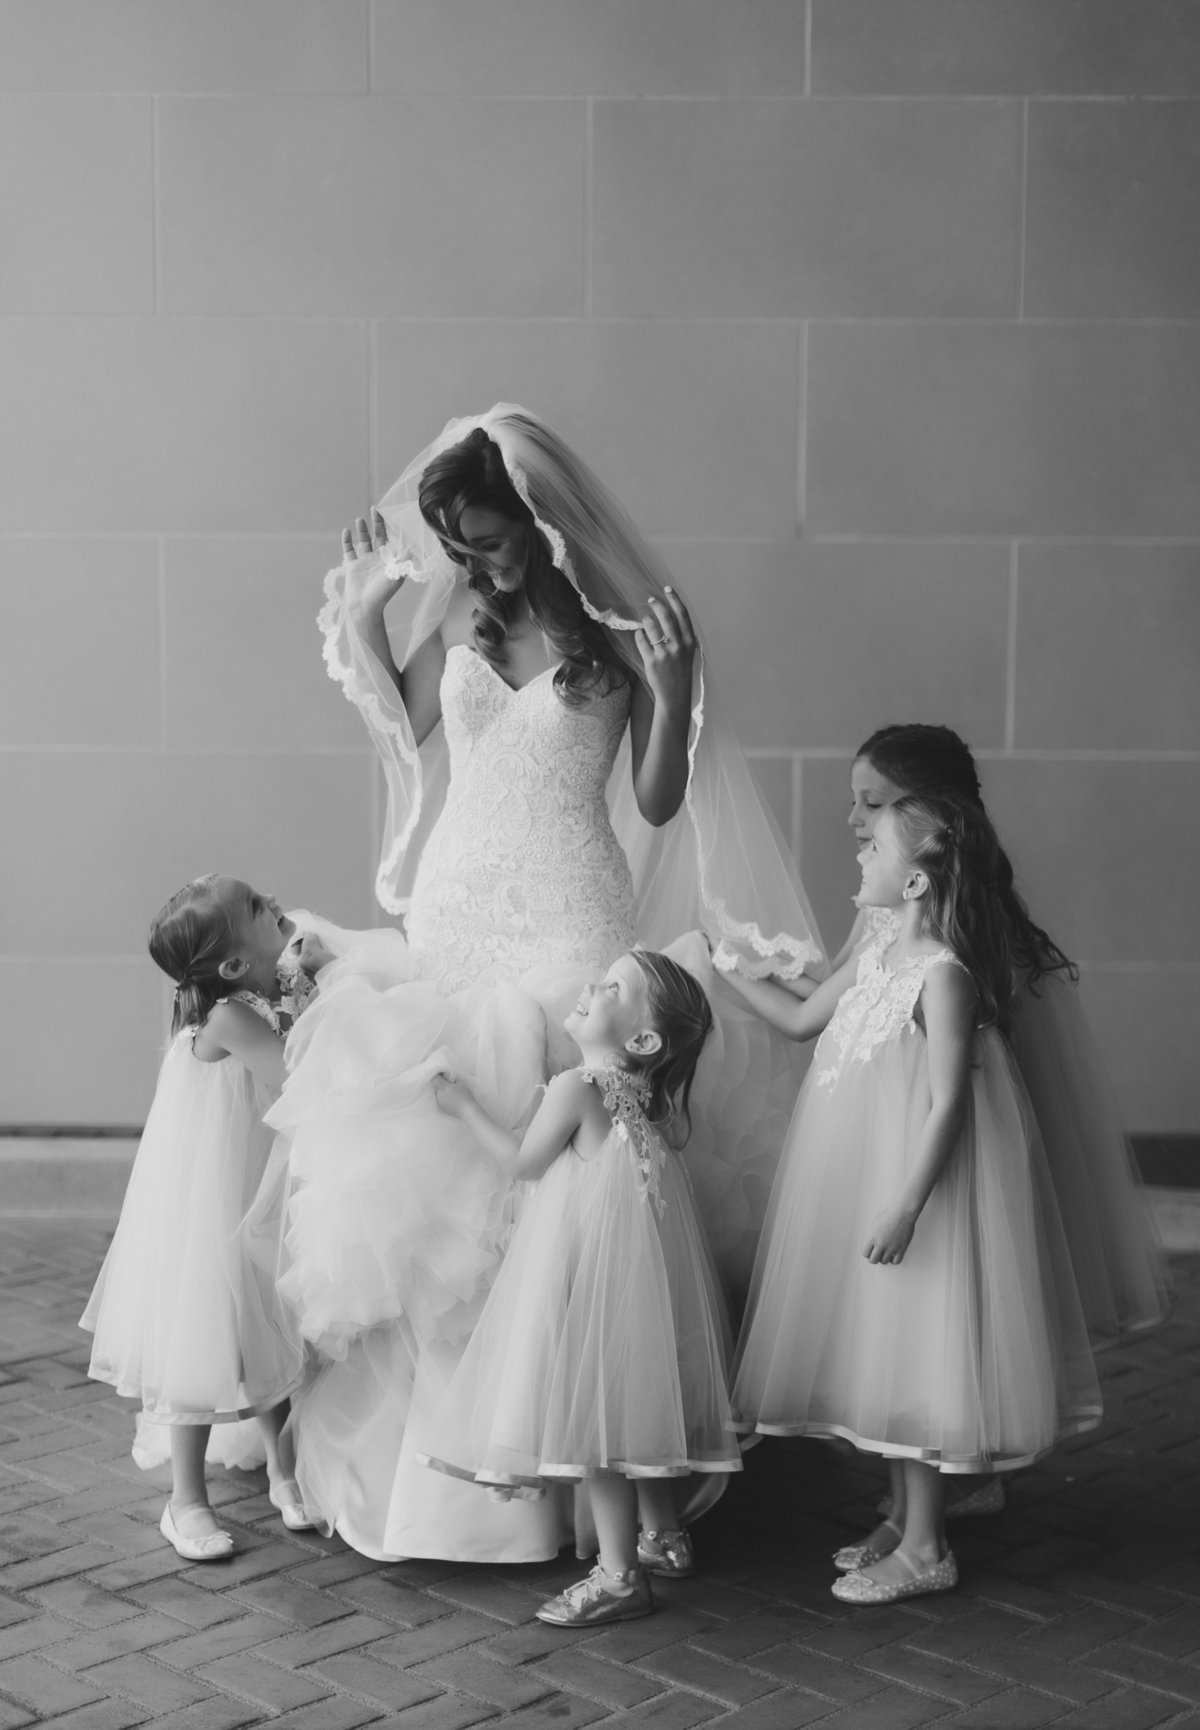 WorldsFairPavillionWedding_StLouisWedding_KayliDerek_CatherineRhodesPhotography-250-Edit